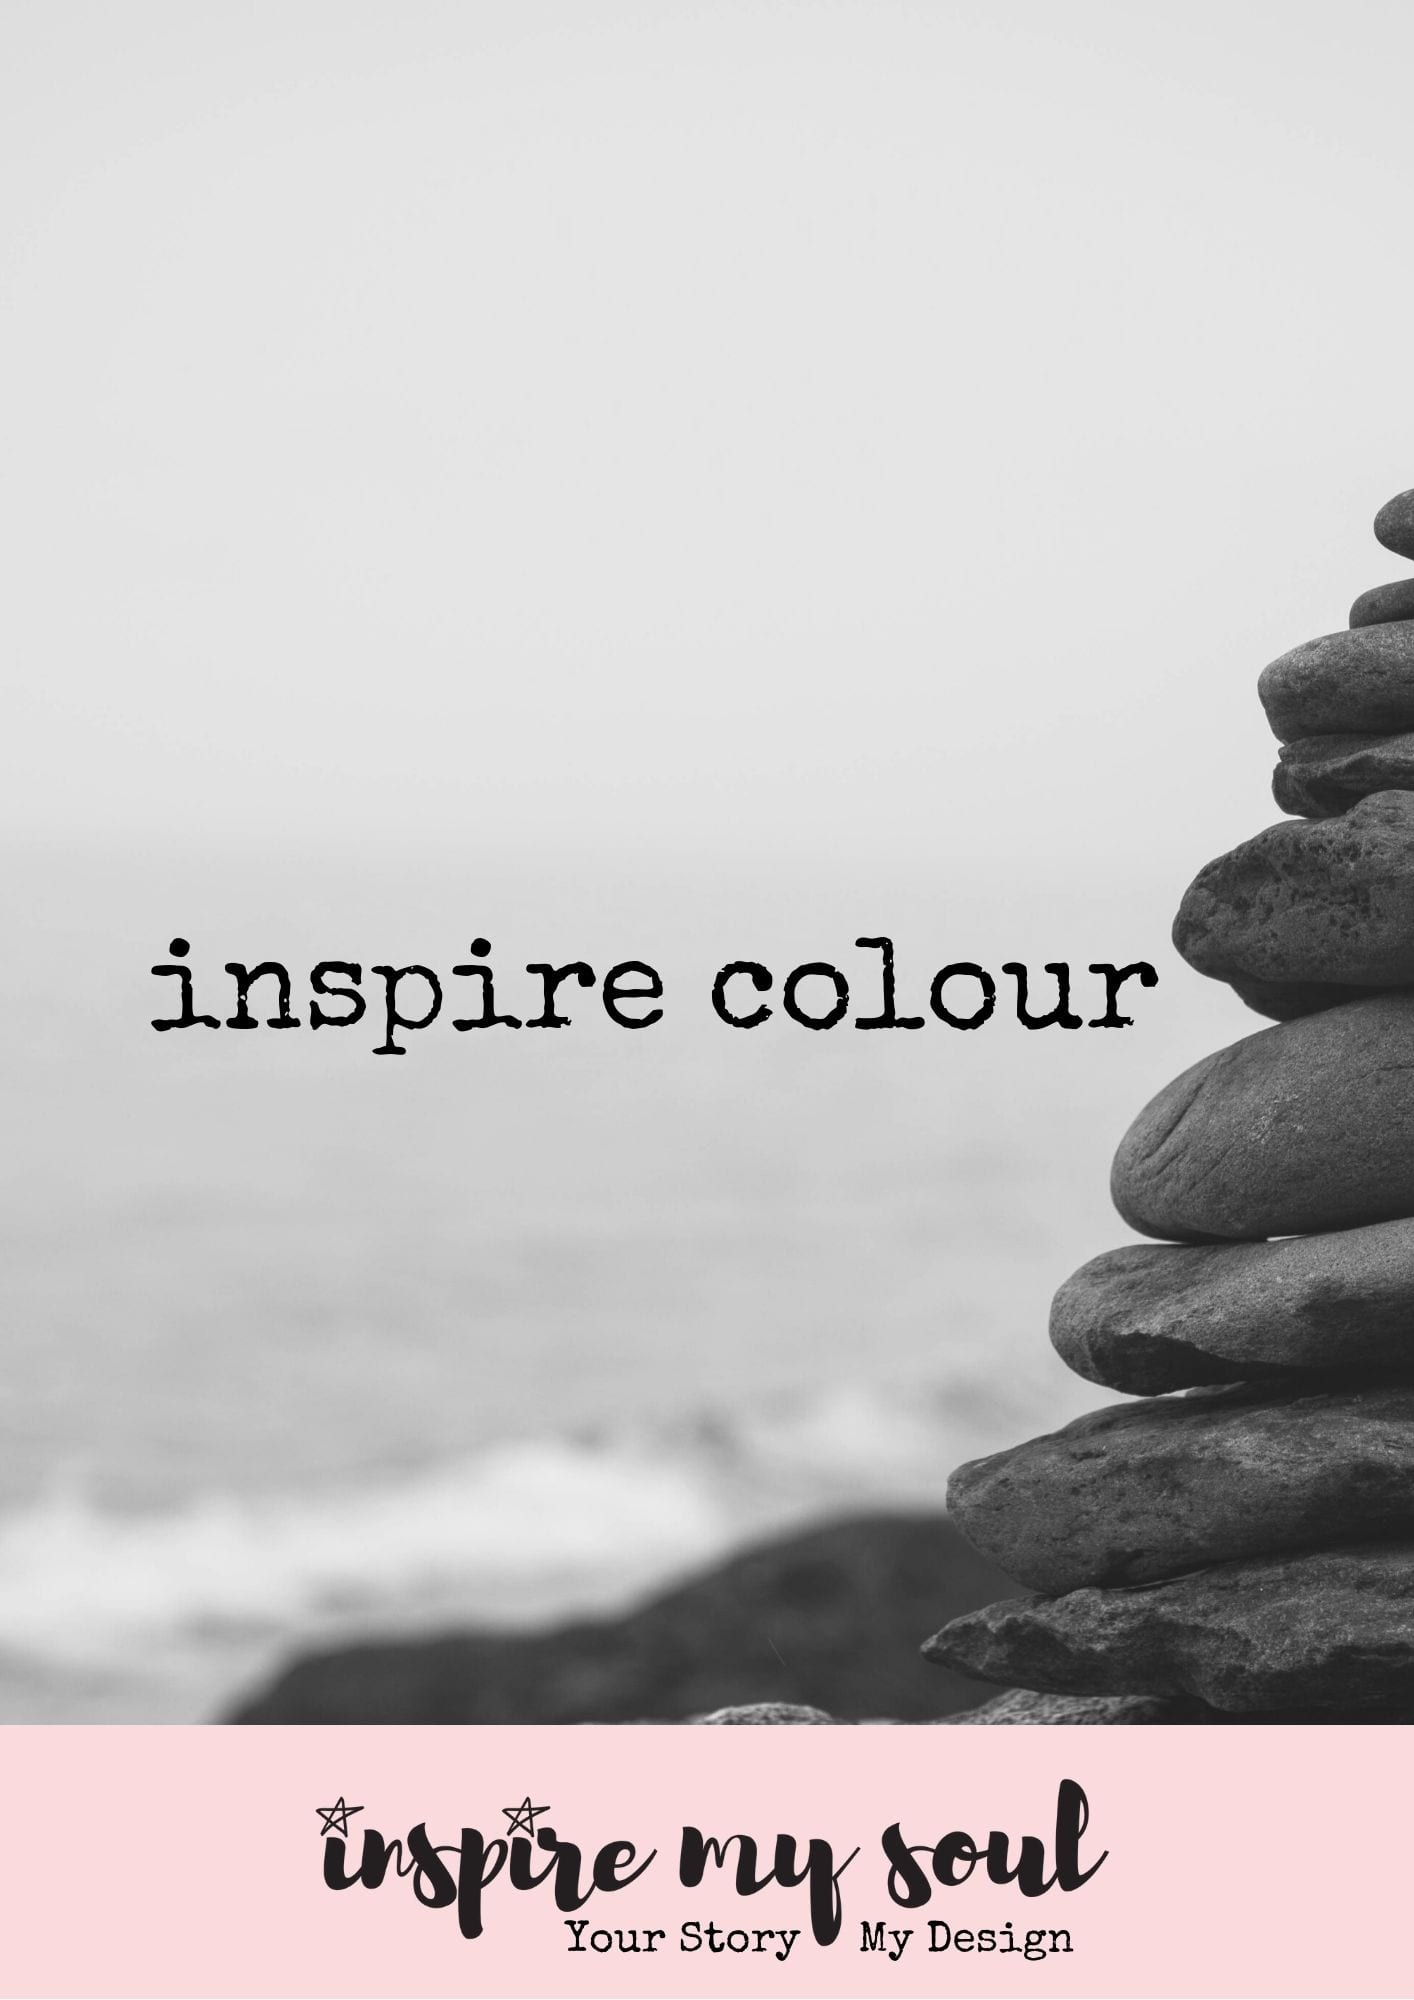 inspire colour download for calm